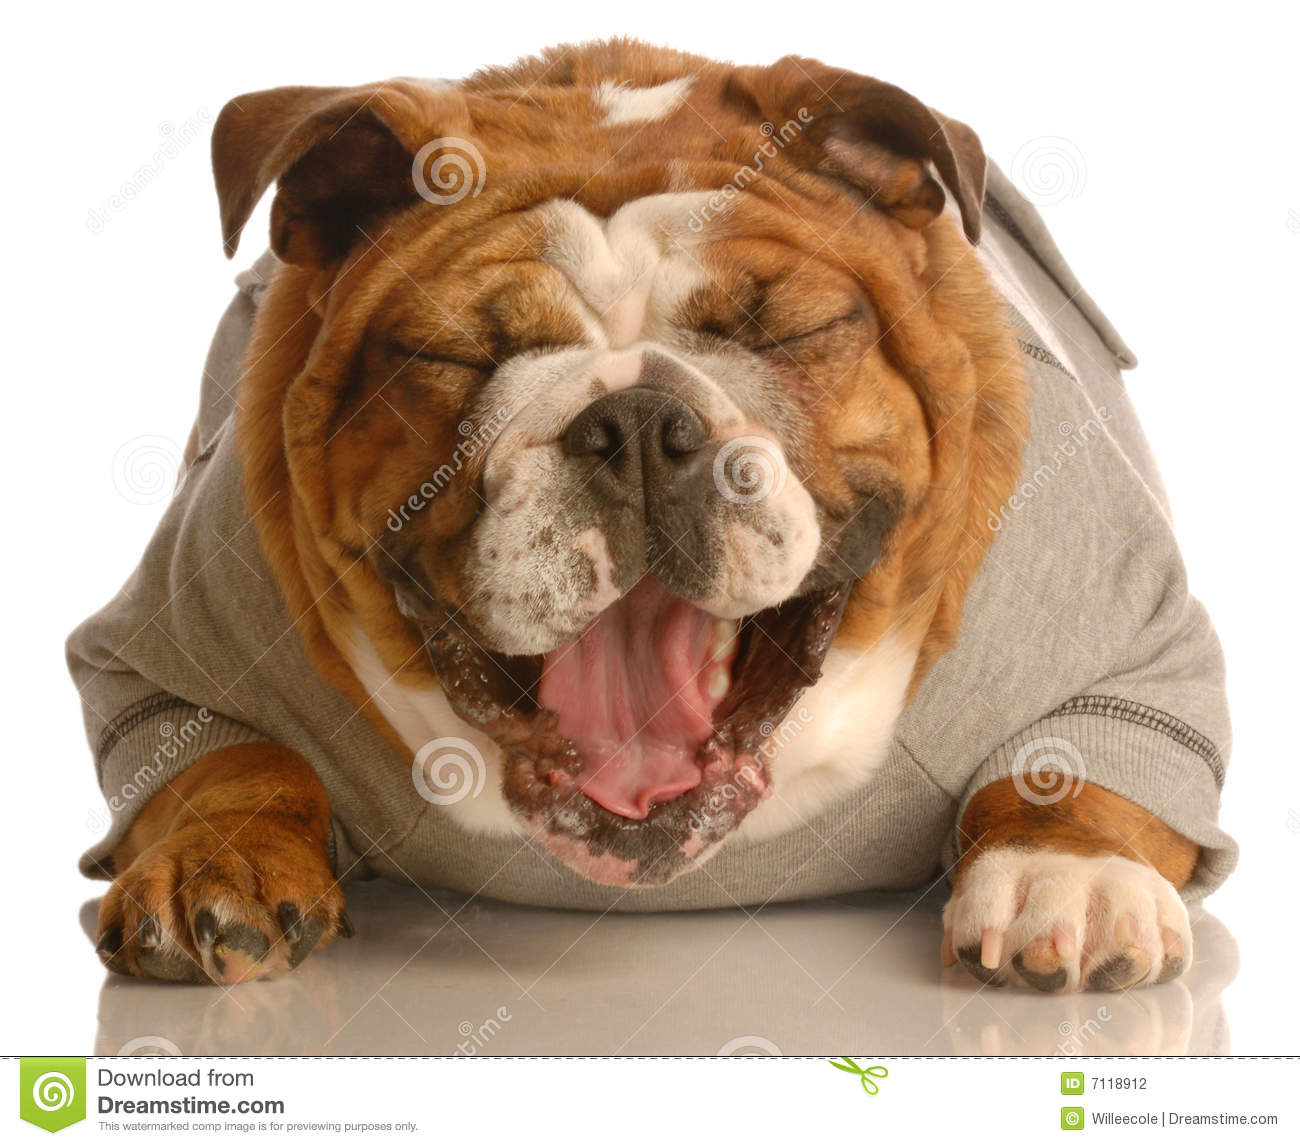 Dog Laughing Stock Photography - Image: 7118912 - photo#50